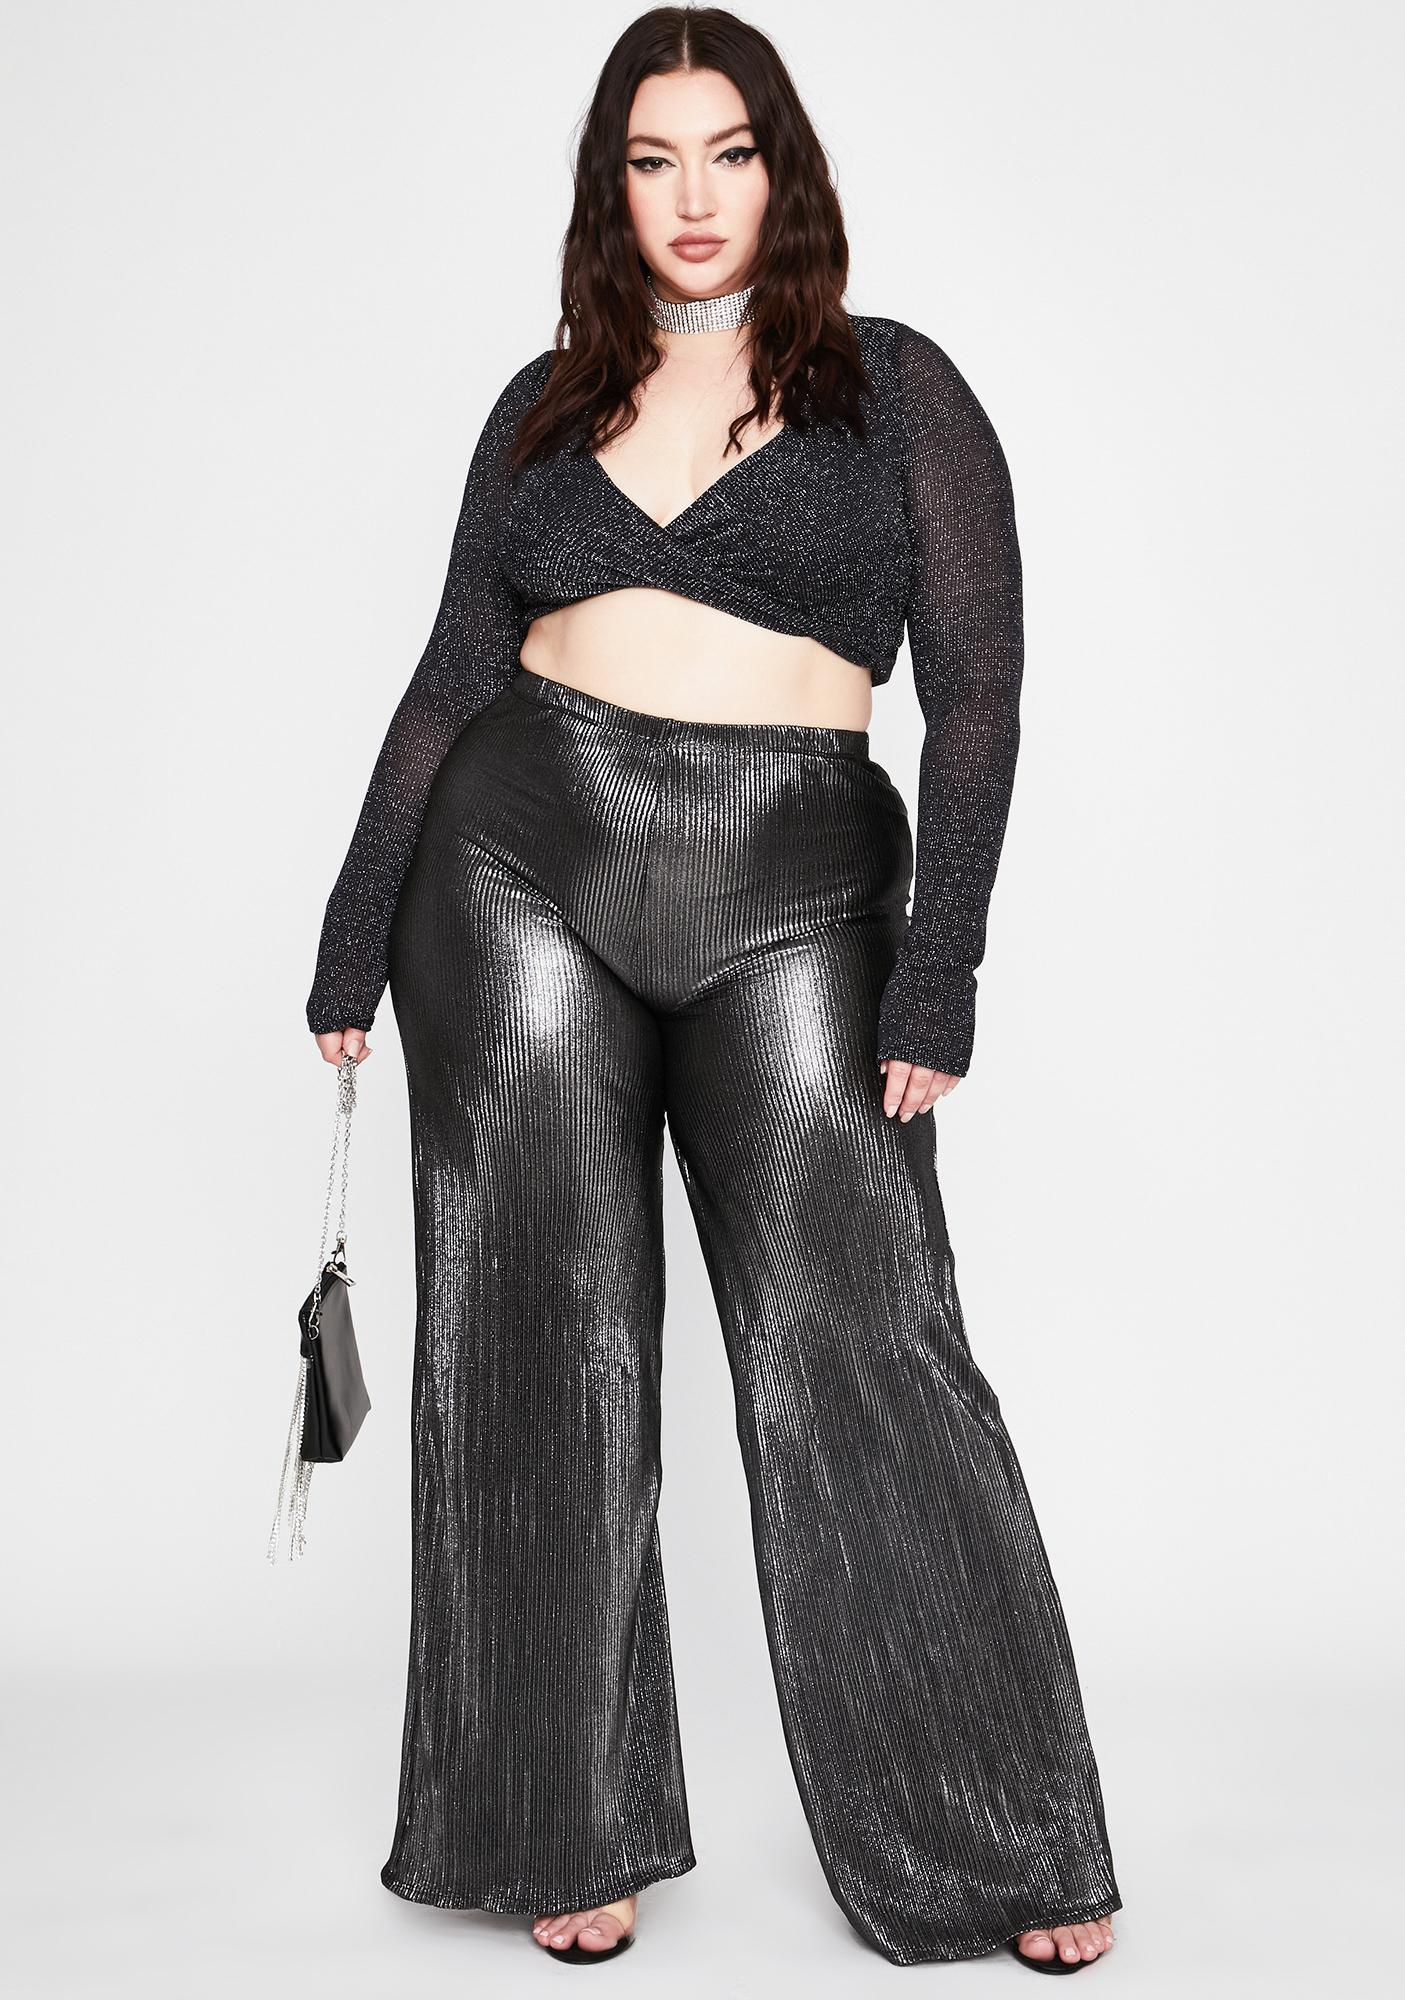 Her Dark Everyday Luxury Crepe Pants